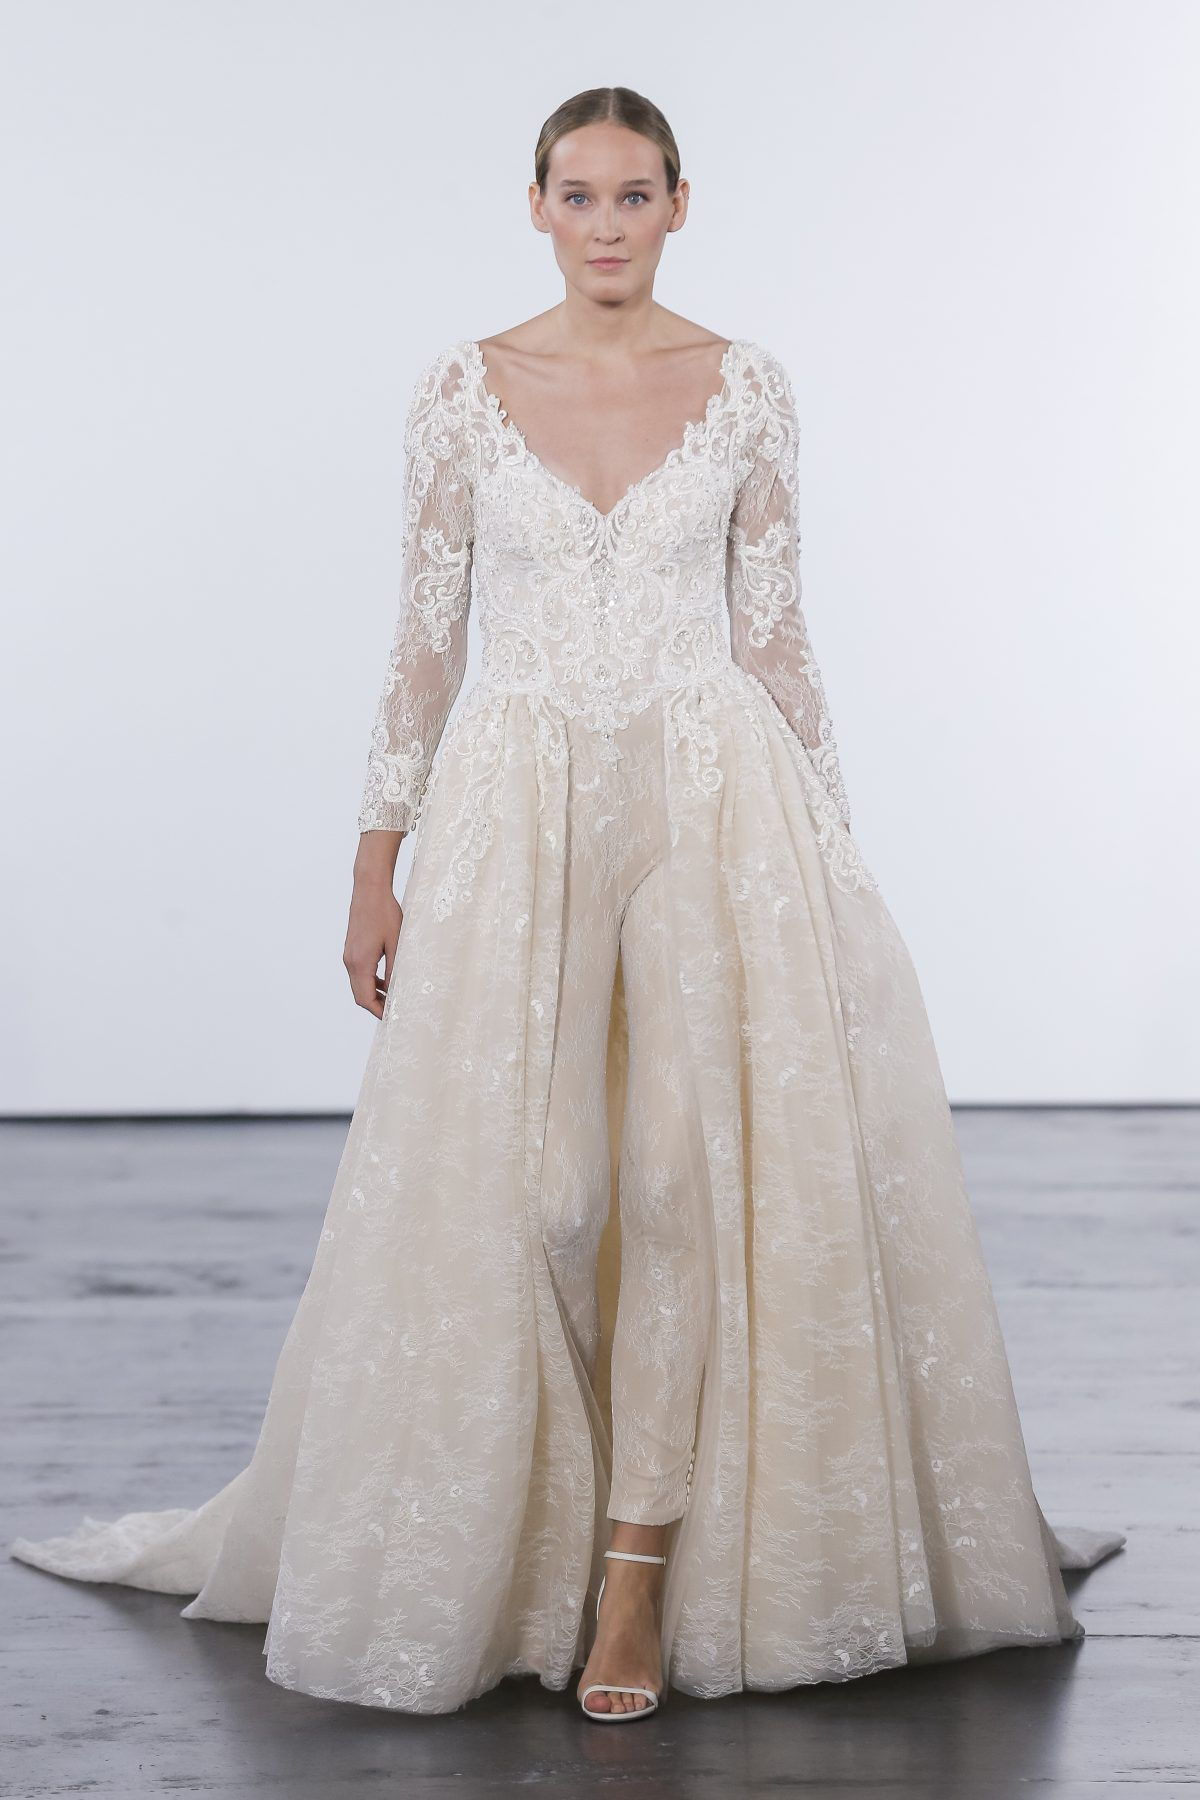 Long sleeve vneck lace pantsuit with overskirt and beaded bodice